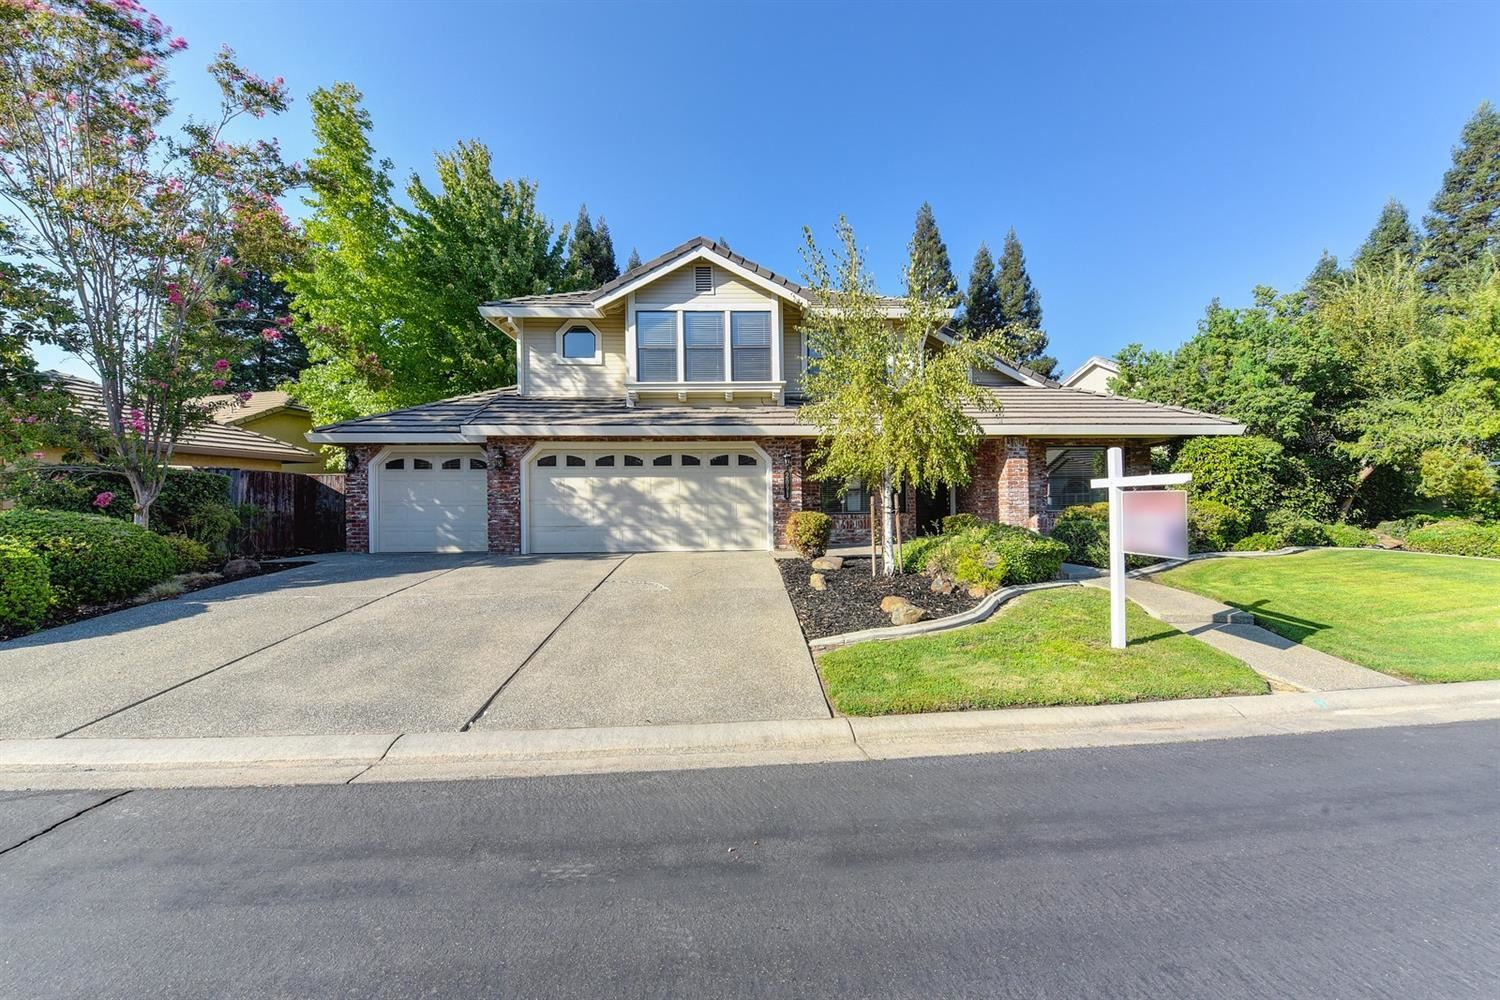 2091 Hardwick Way, Roseville, CA 95746 - #: 20049539